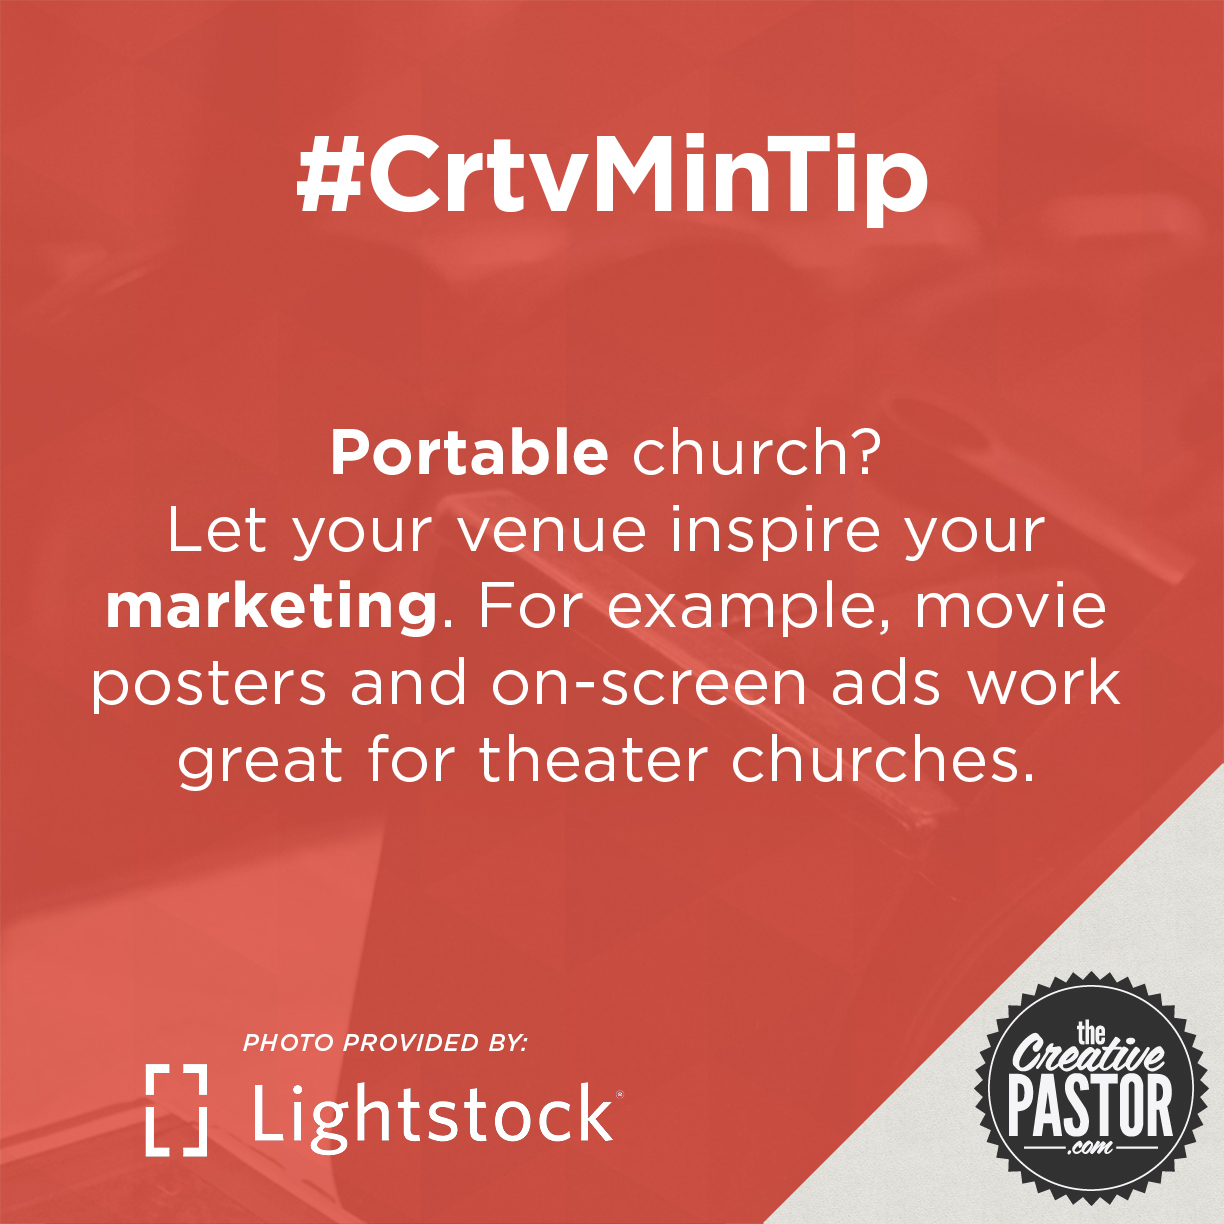 Portable church? Let your venue inspire your marketing. For example, movie posters and on-screen ads work great for theater churches.